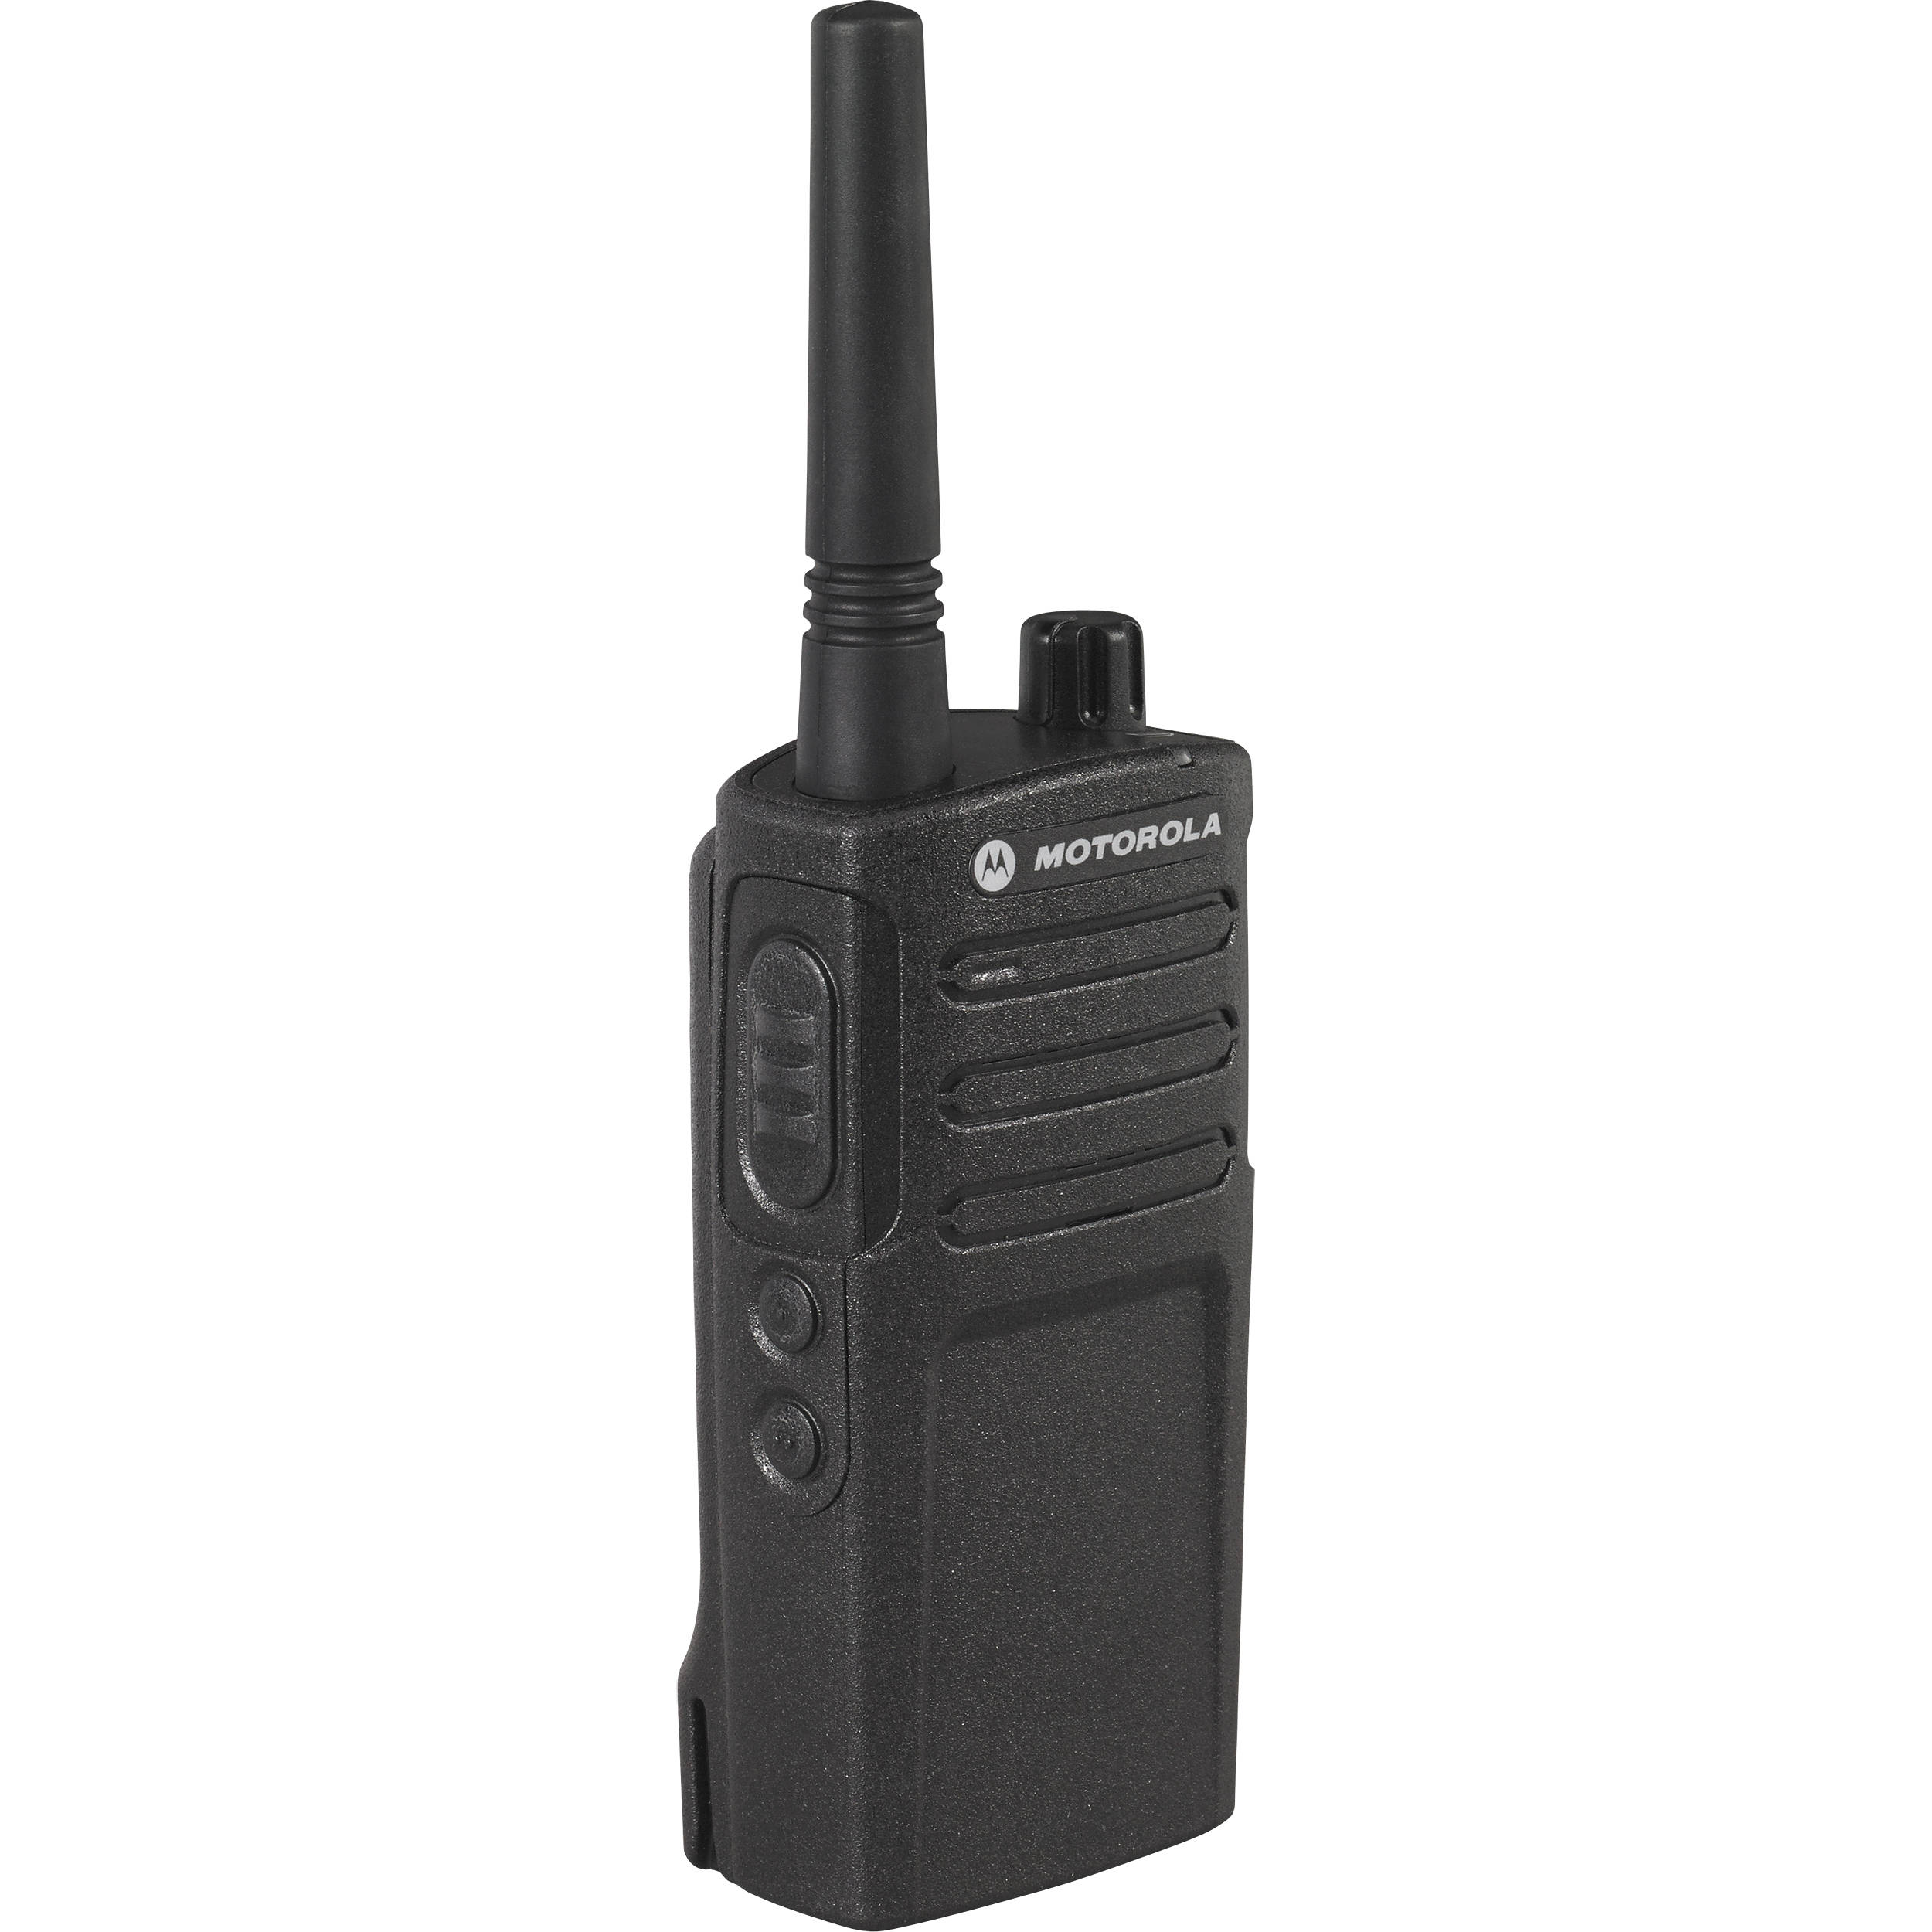 Best 2 Way Radios For Business 2020